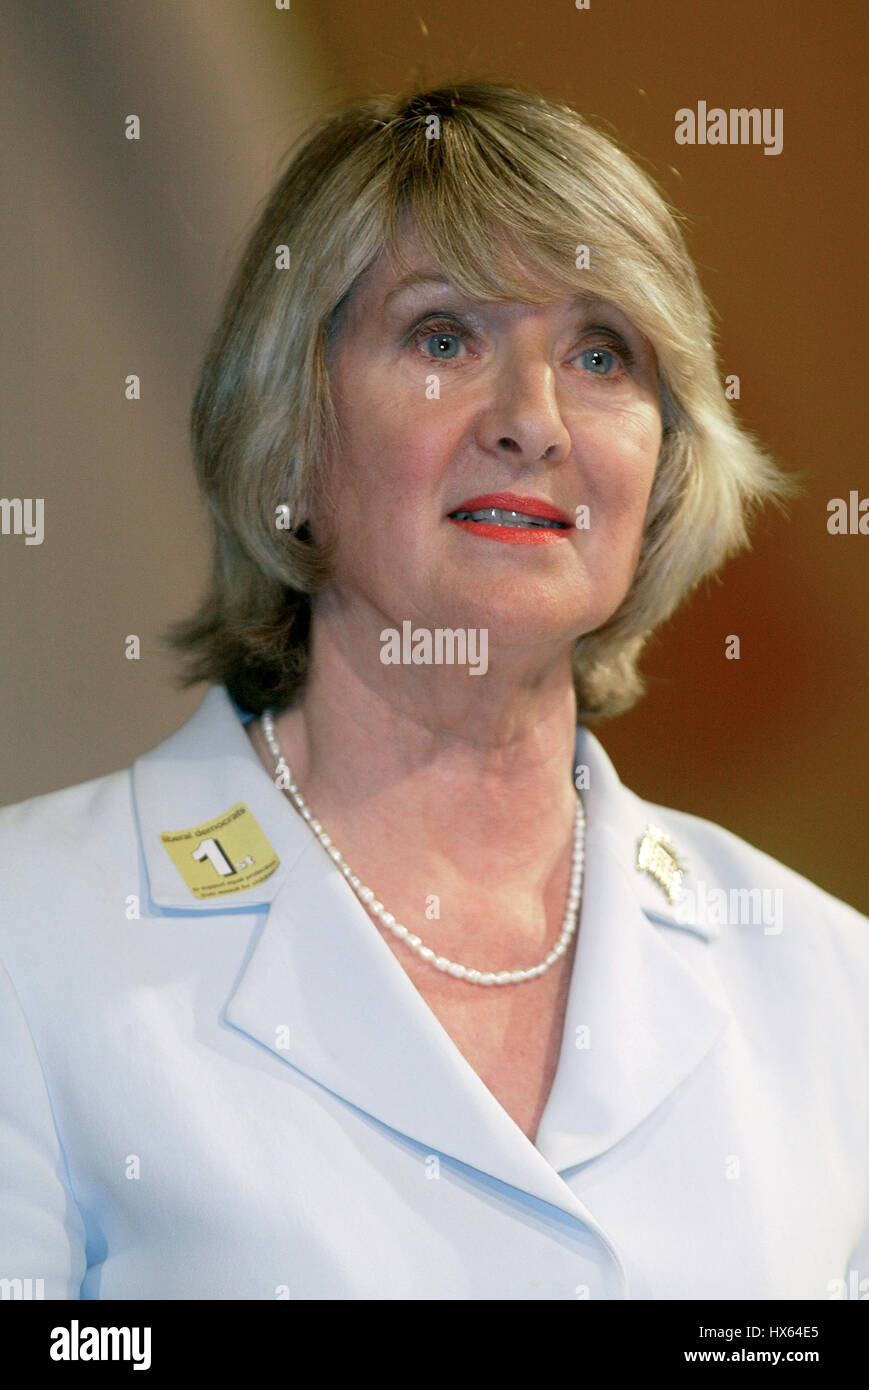 BARONESS WALMSLEY LIBERAL DEMOCRAT PARTY 24 September 2003 BRIGHTON ENGLAND - Stock Image